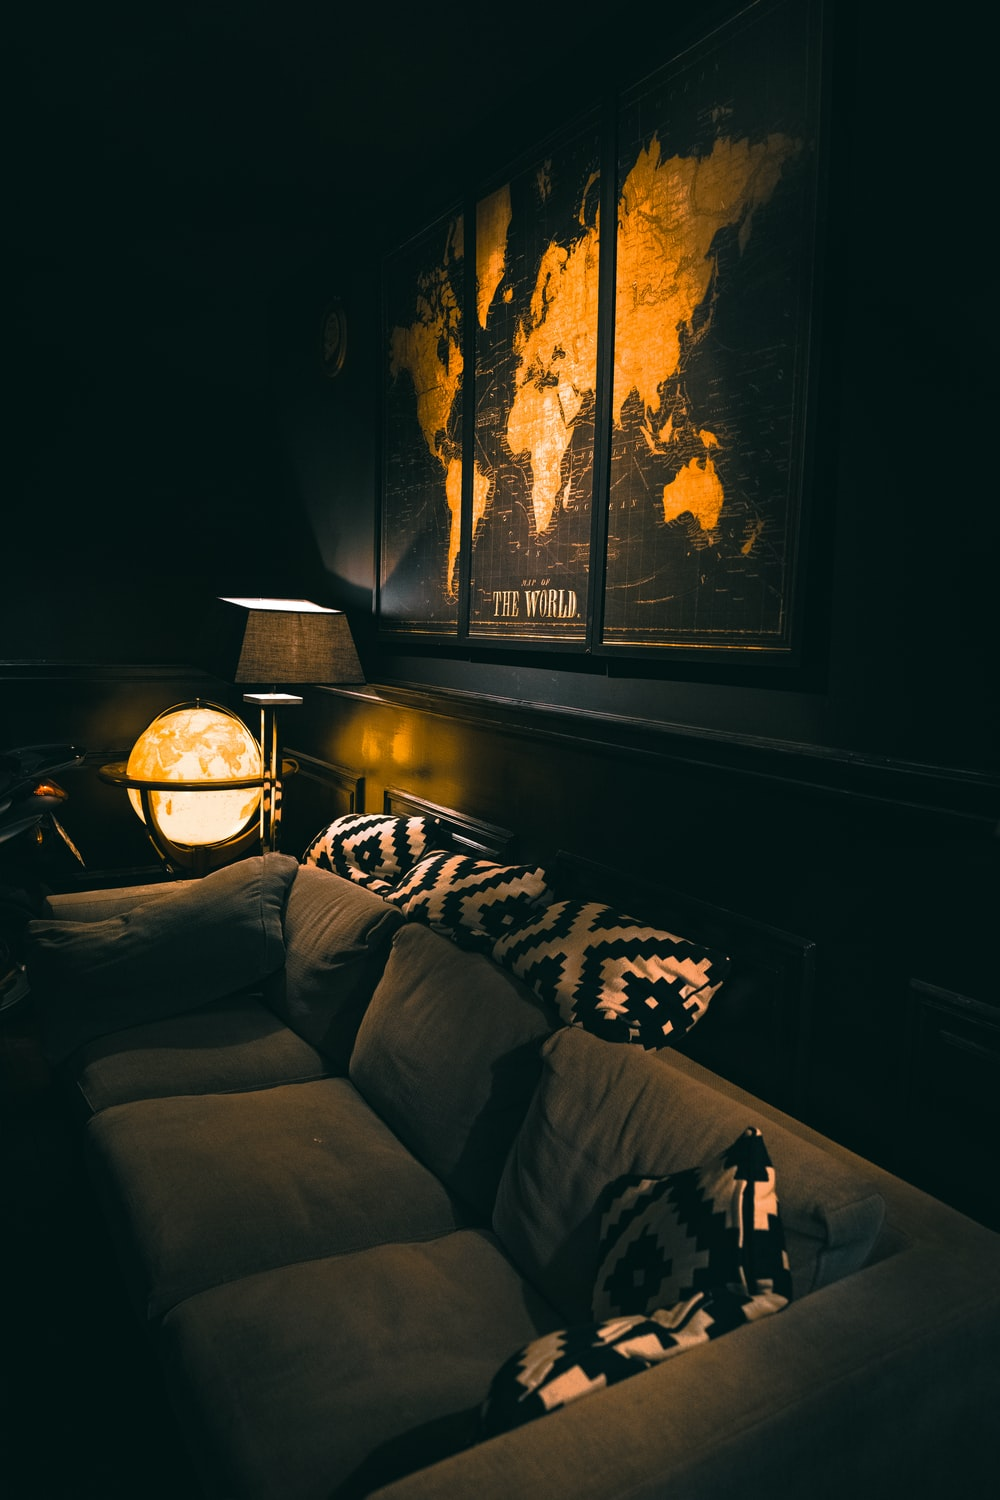 black and white throw pillows on couch